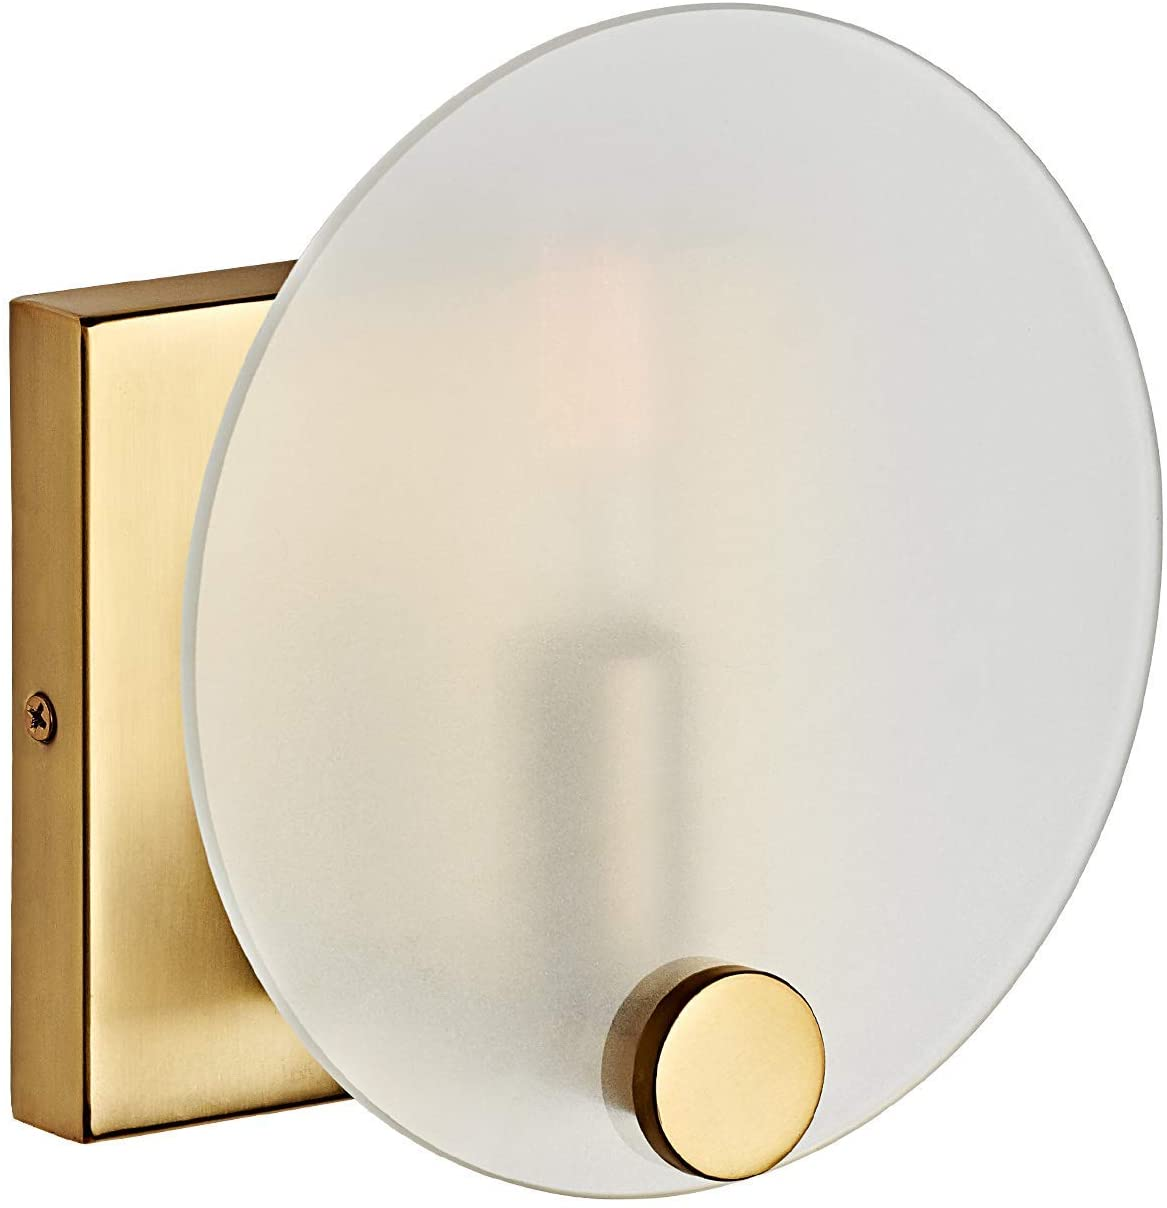 Motini 1 Light Gold Wall Sconce In Brushed Brass With Round Frosted White Glass Candle Wall Lighting Modern Single Vanity Light For Bathroom Bedroom 7 X7 X4 Amazon Com